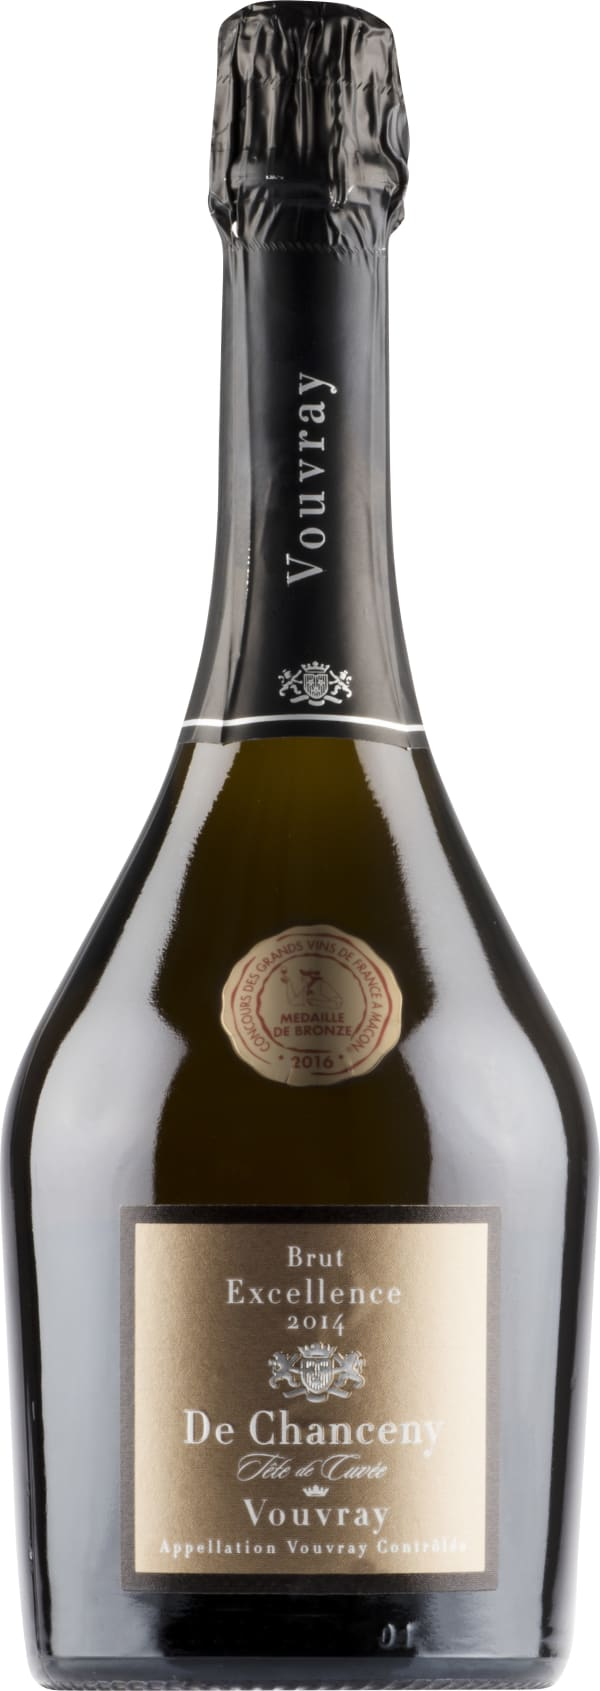 De Chanceny Excellence Vouvray Brut 2014